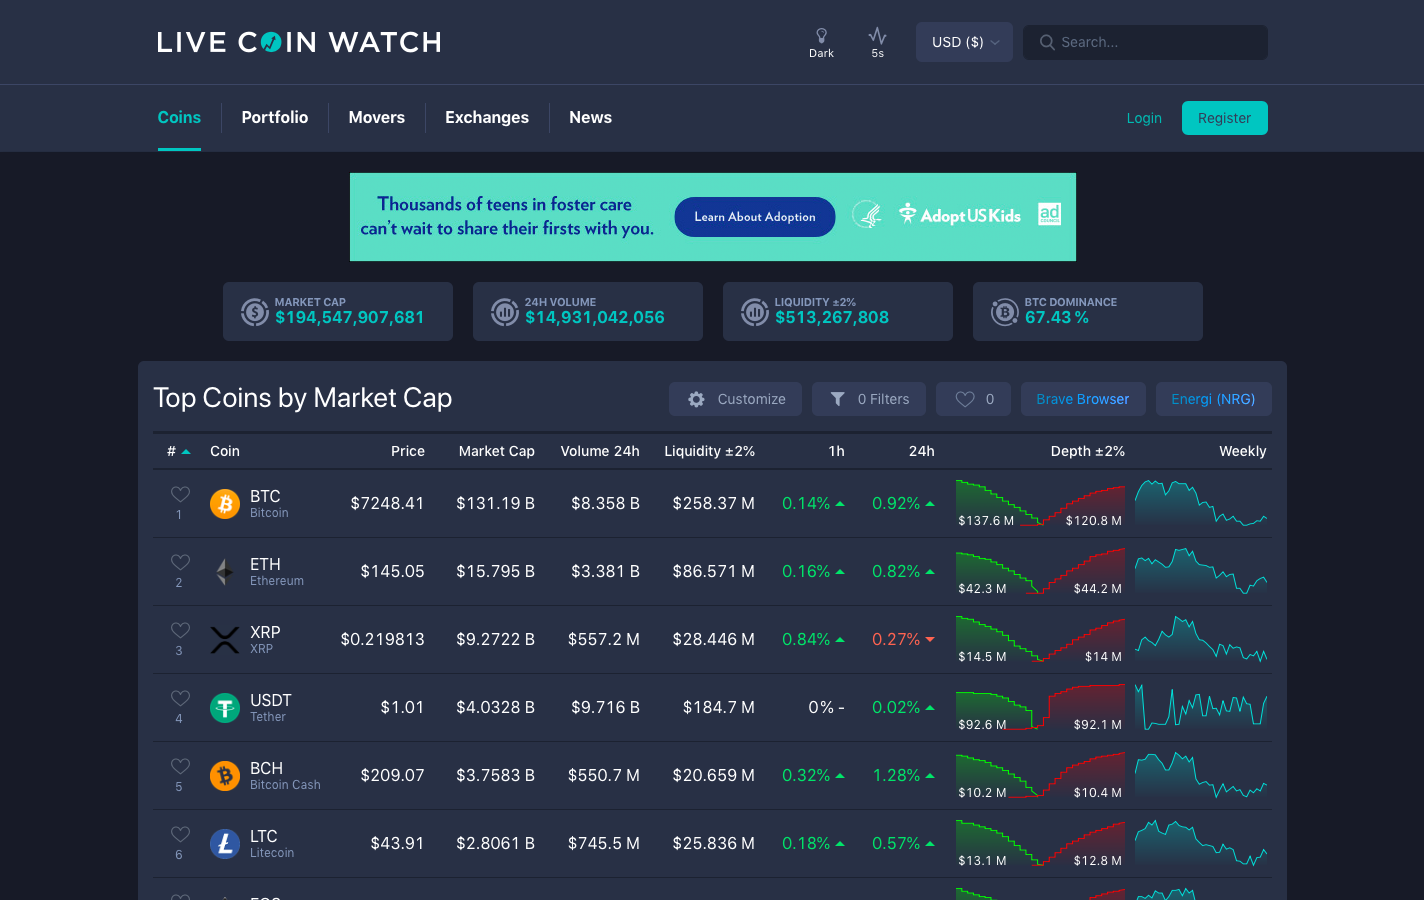 LiveCoinWatch homepage